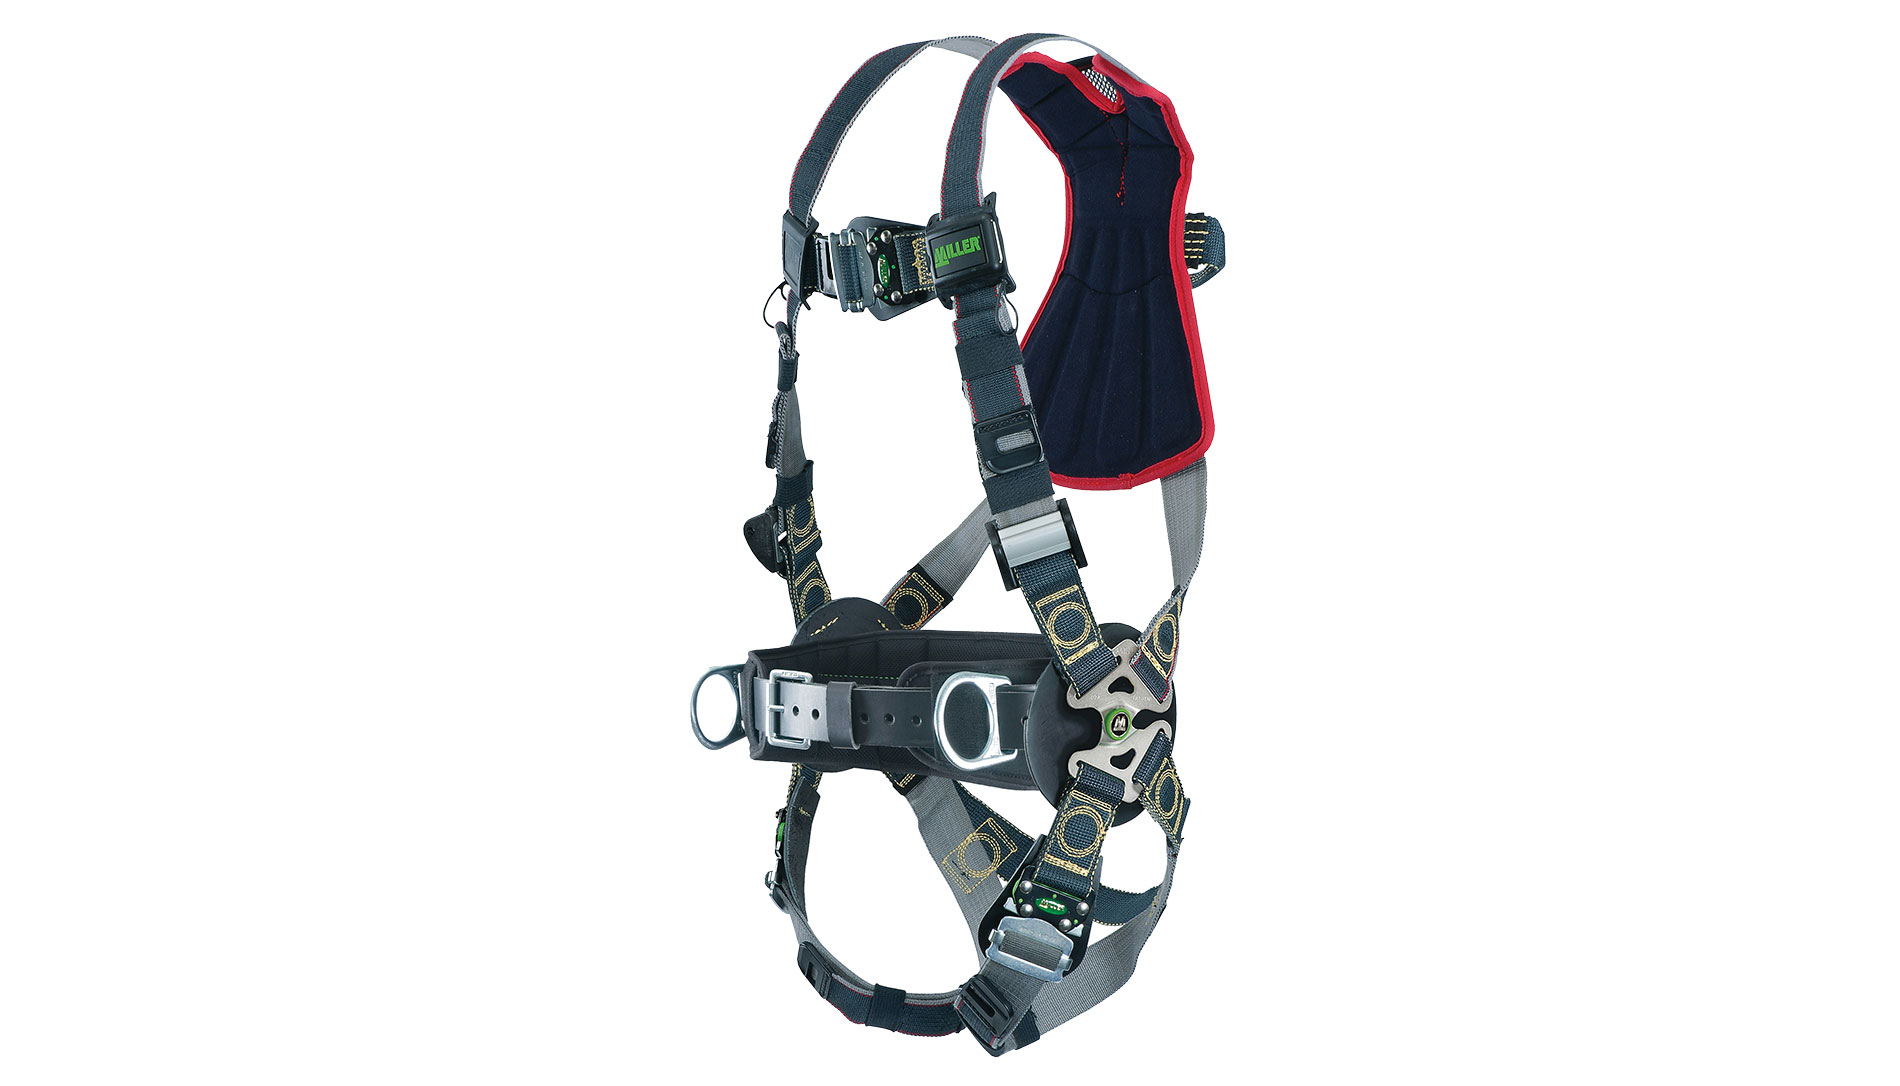 Honeywell Miller's Revolution arc-rated safety harness